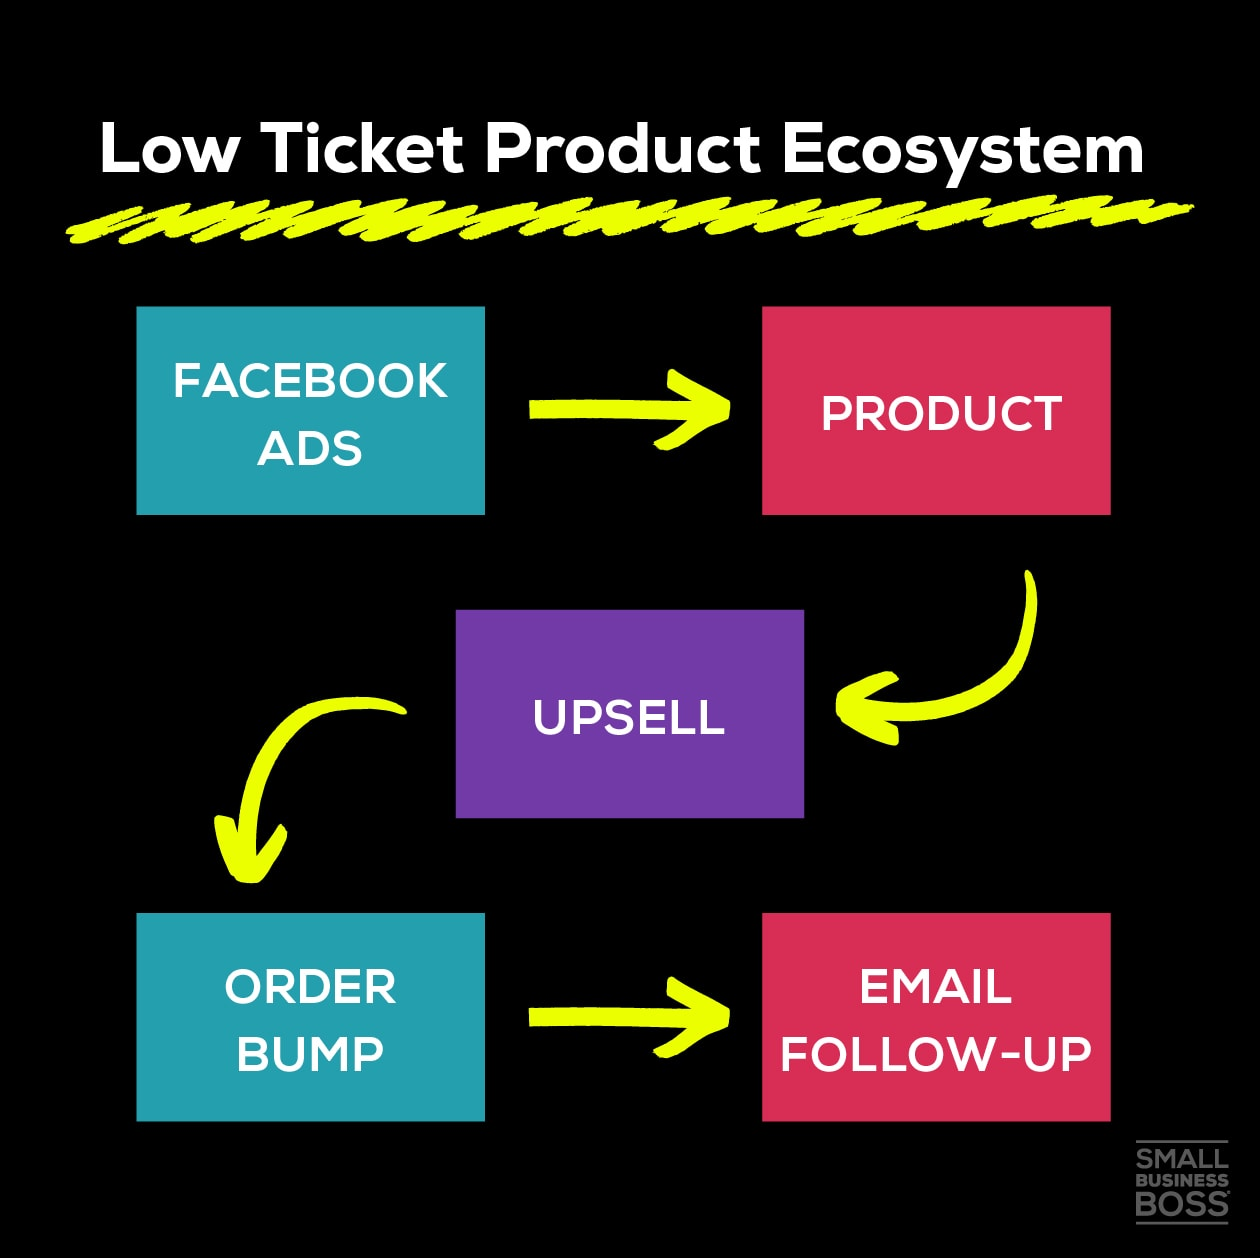 Low Ticket Product Ecosystem